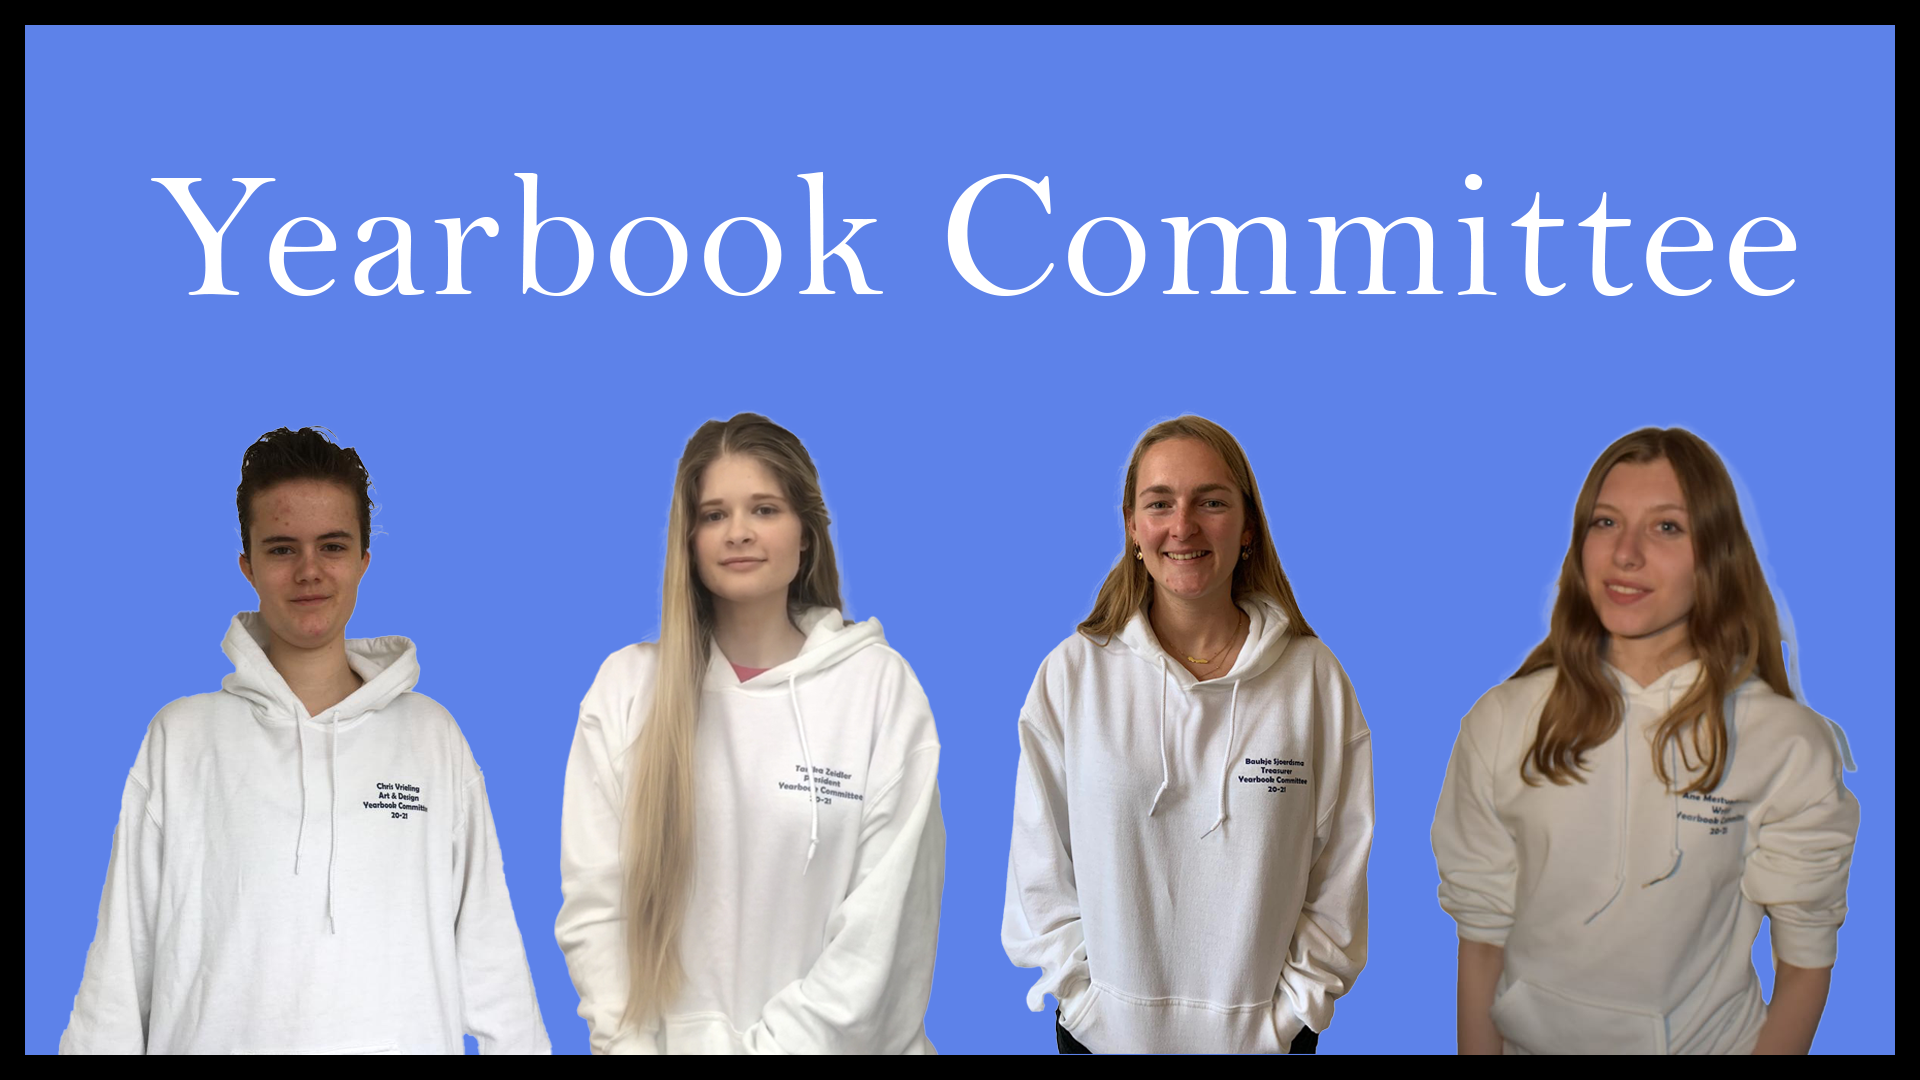 Committee Picture Yearbook